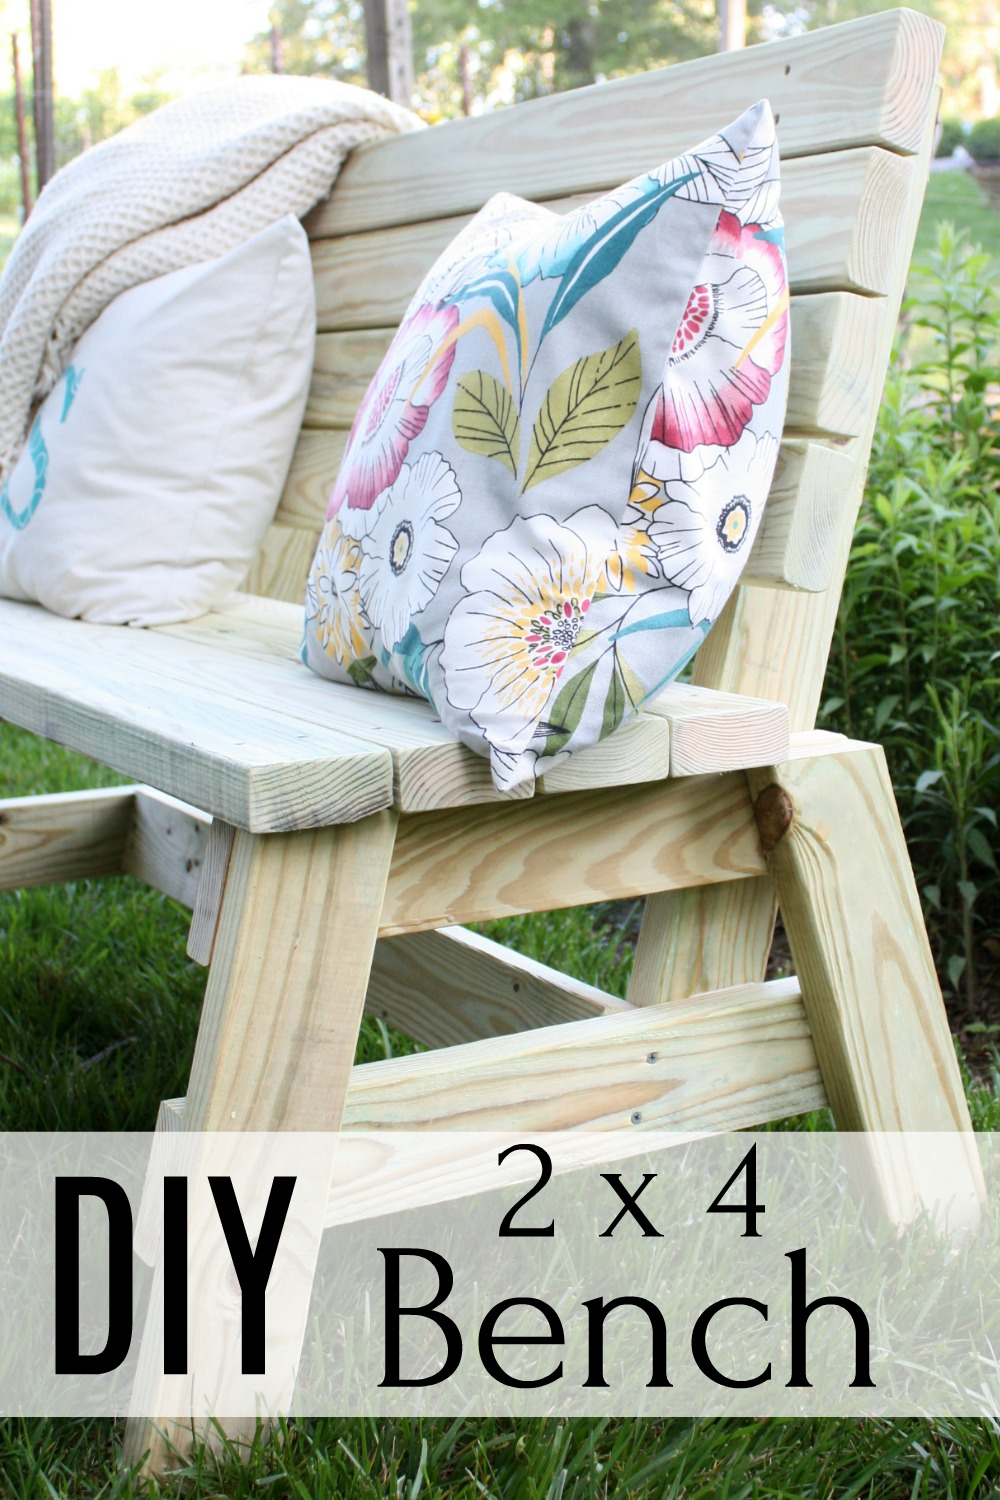 DIY 2x4 Bench - Make a bench using 2x4s. #woodworking #diybench #2x4project via @spaula